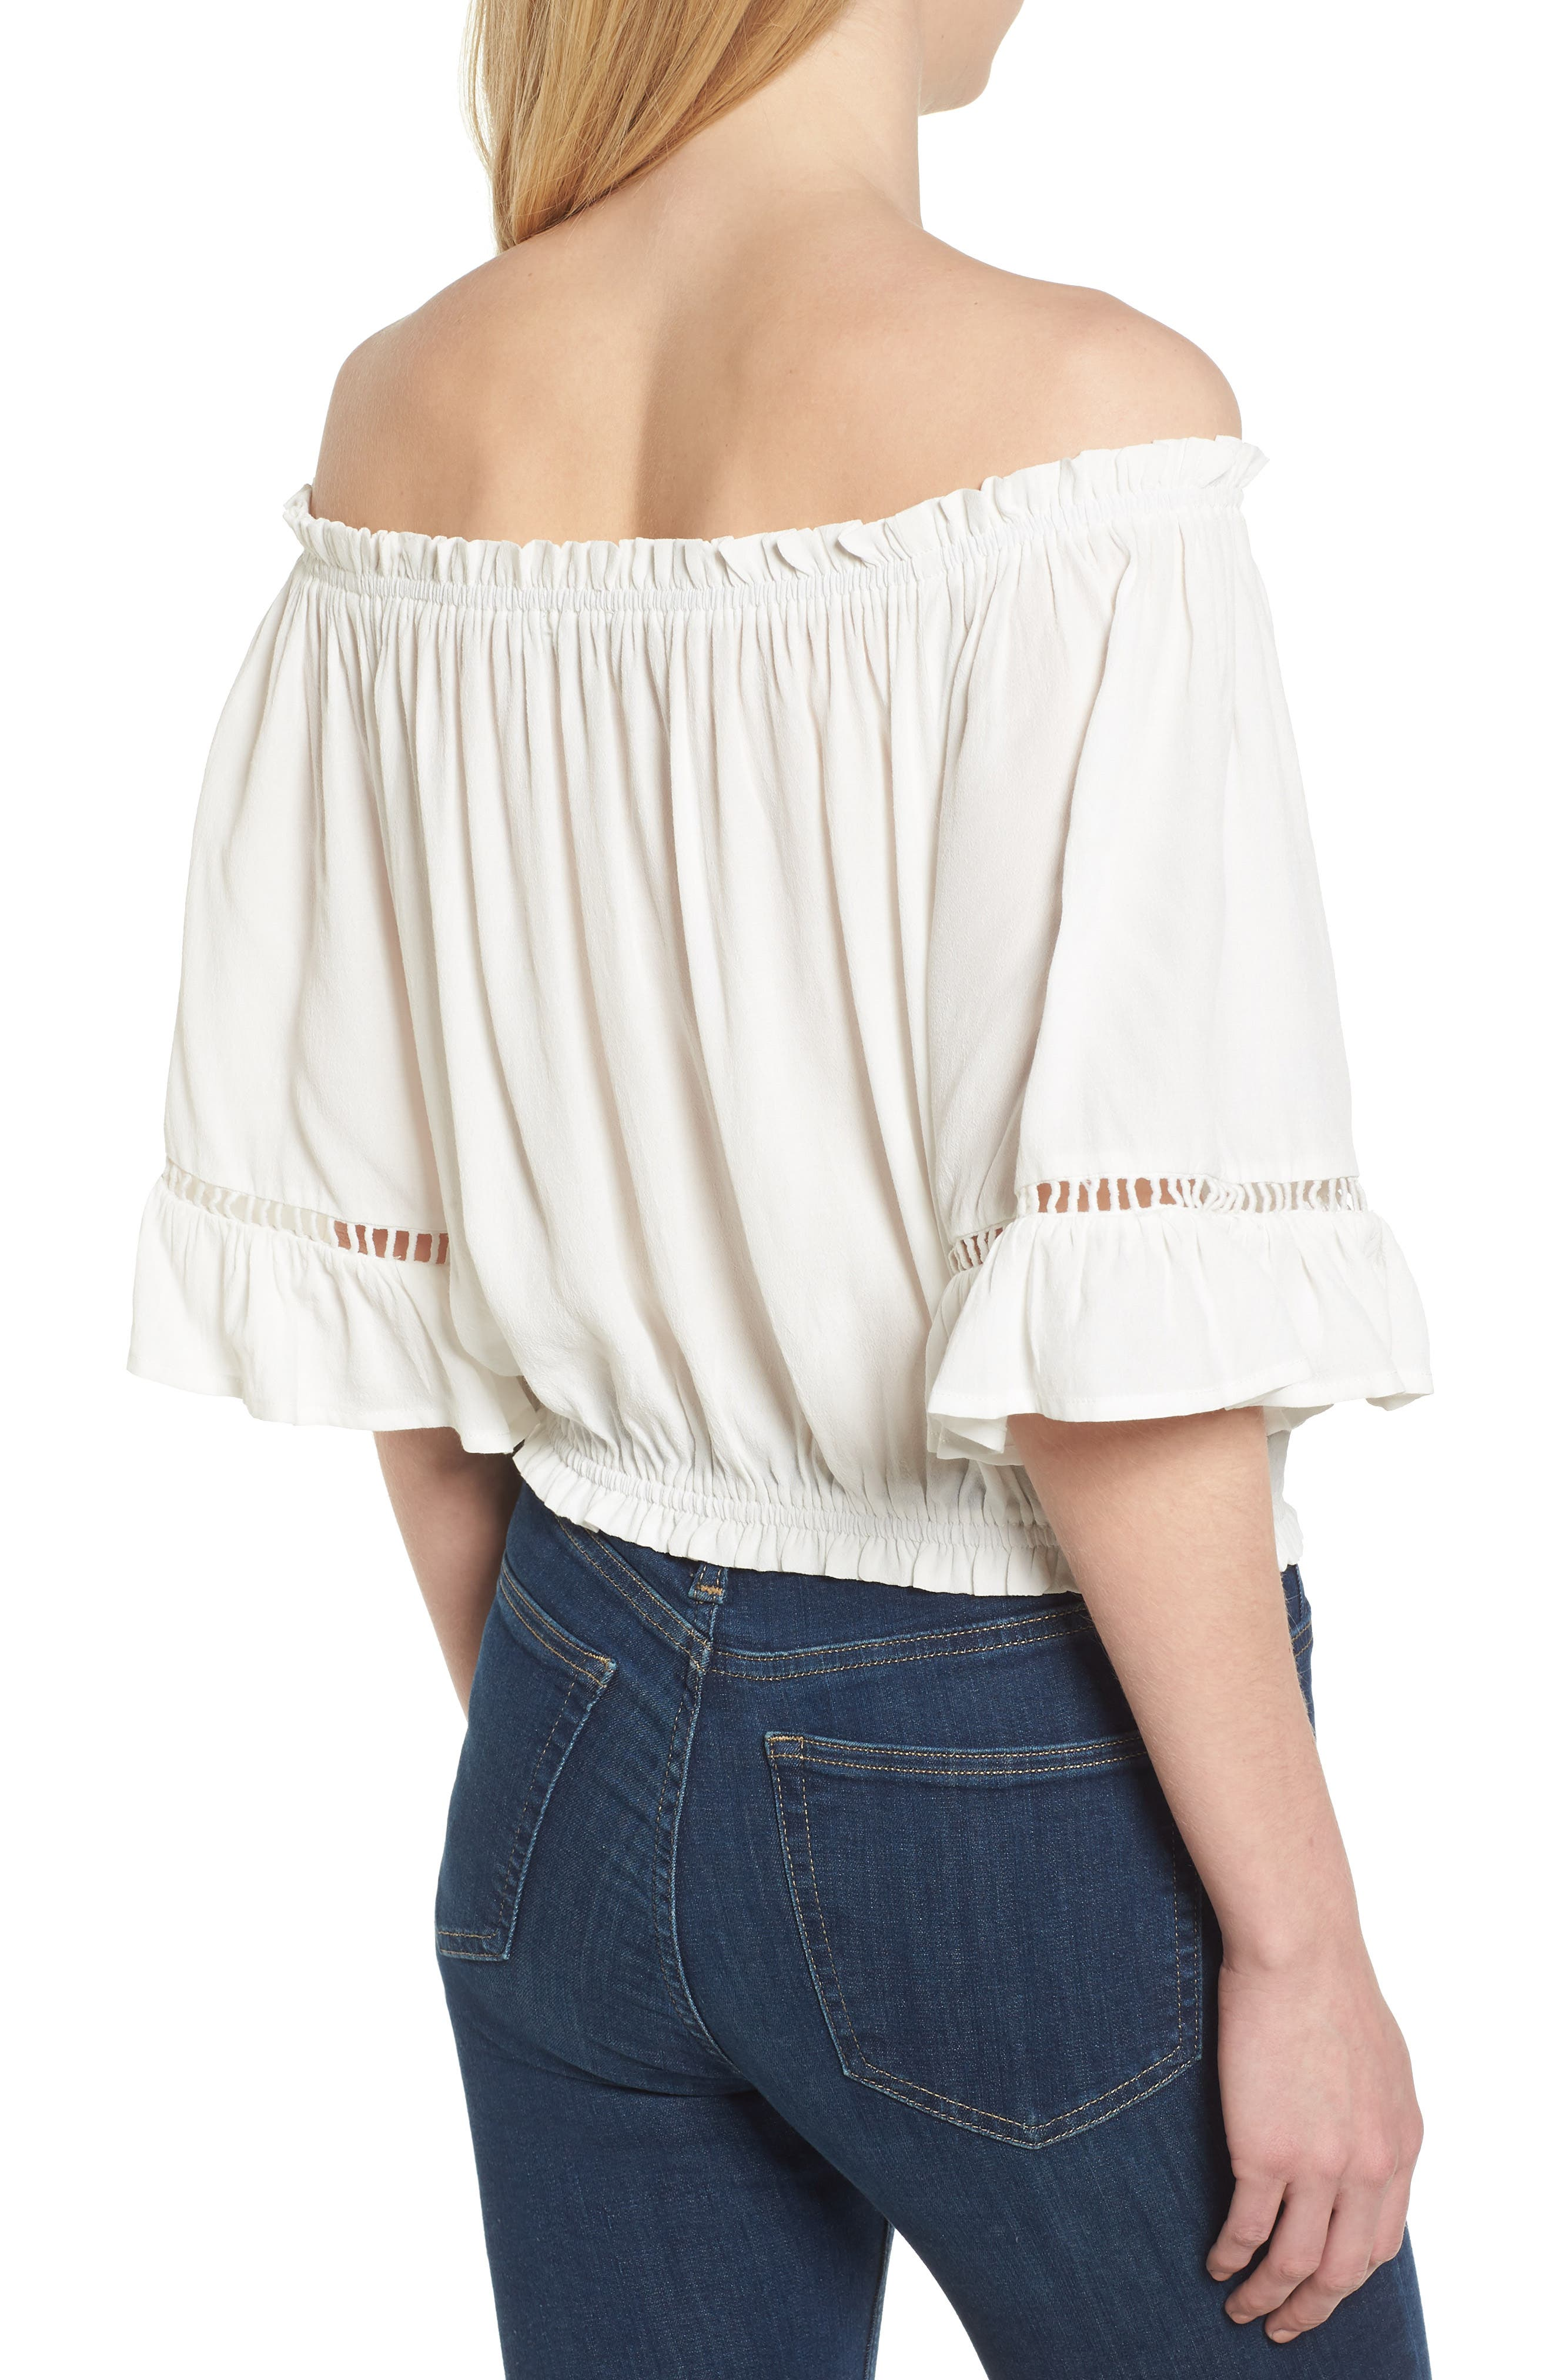 Bishop + Young Off the Shoulder Poet Top,                             Alternate thumbnail 2, color,                             White